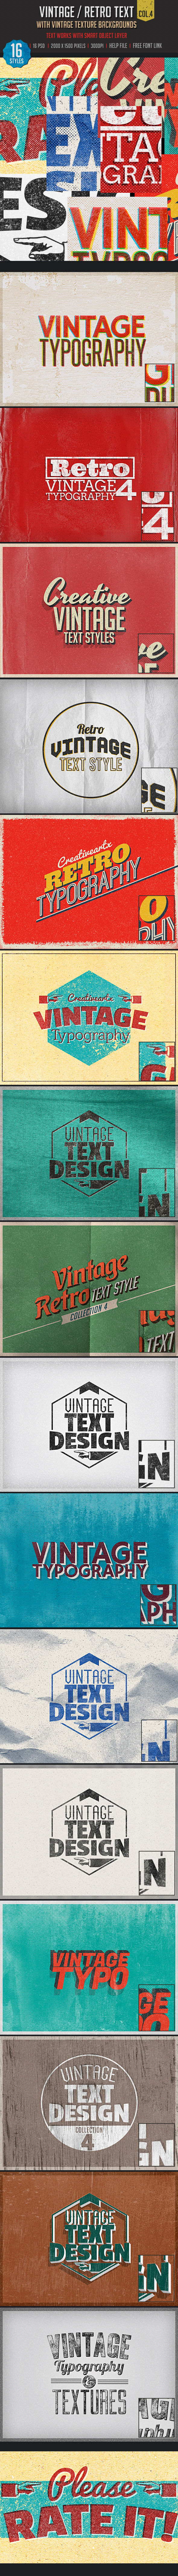 Vintage Retro Text Col 4